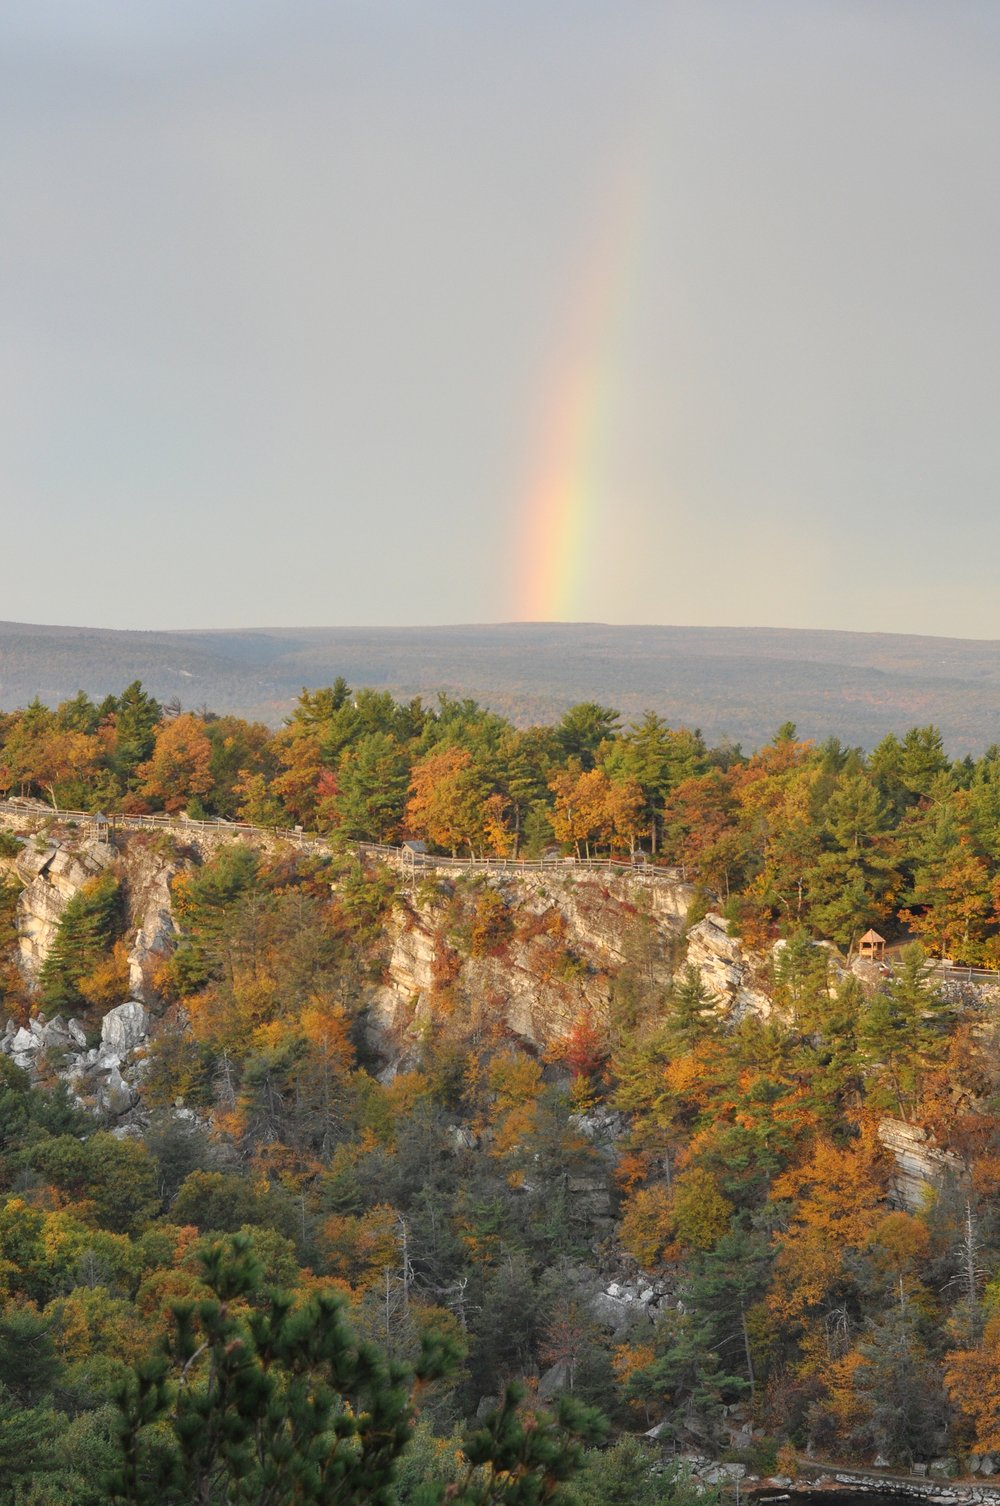 A surprise morning rainbow over the Hudson Valley